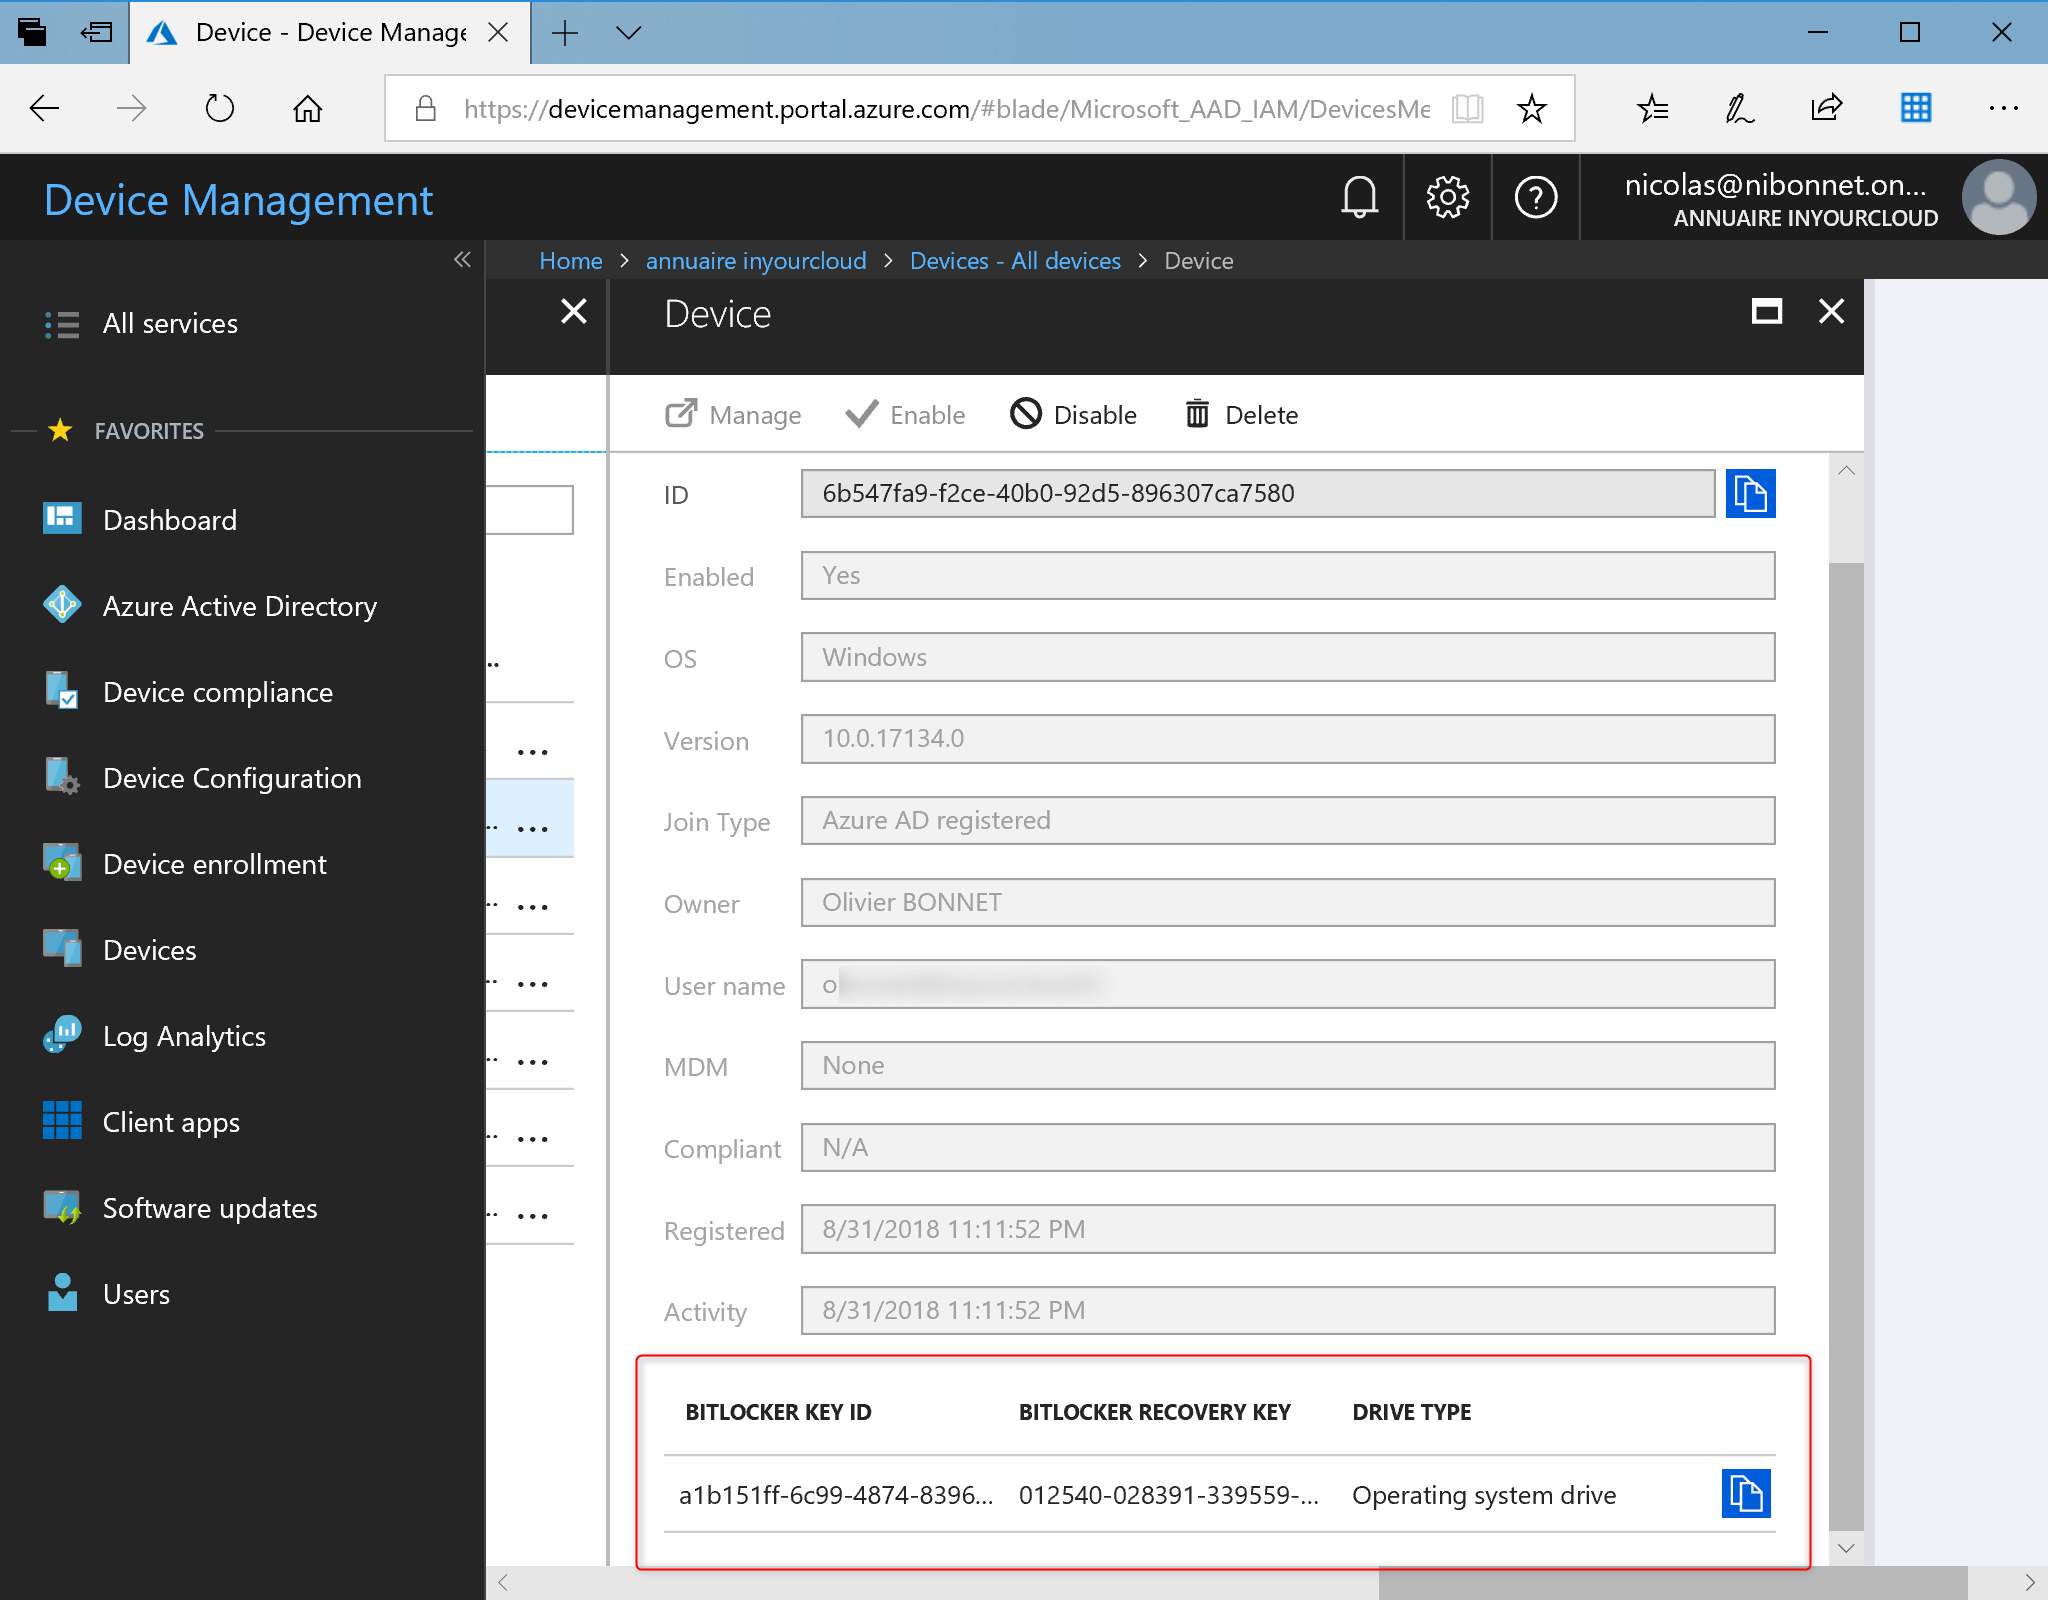 Secure your desktop with Bitlocker View recovery key present in Azure AD